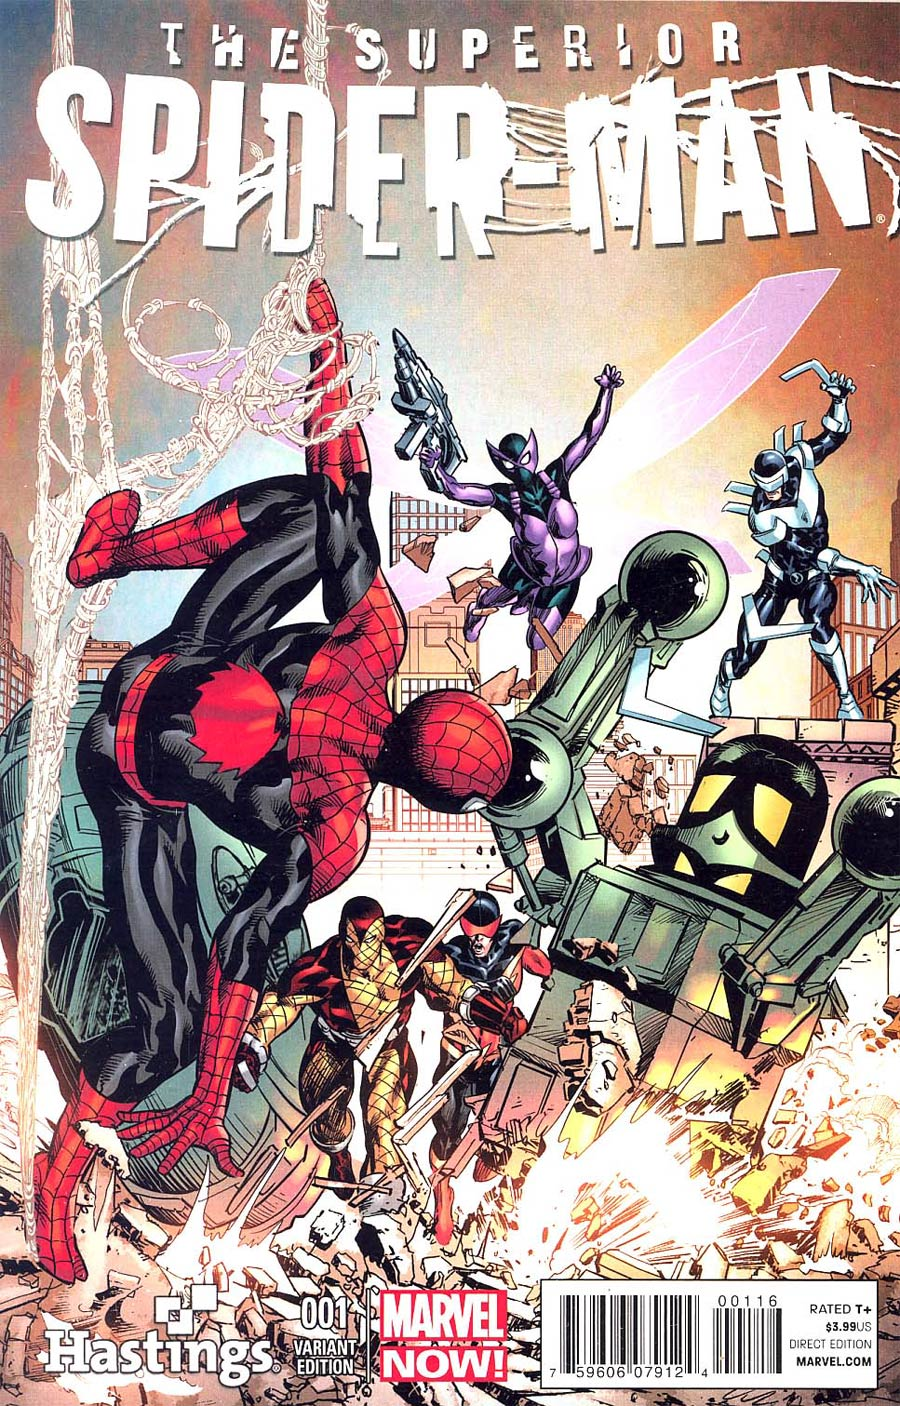 Superior Spider-Man #1 Cover K Hastings Variant